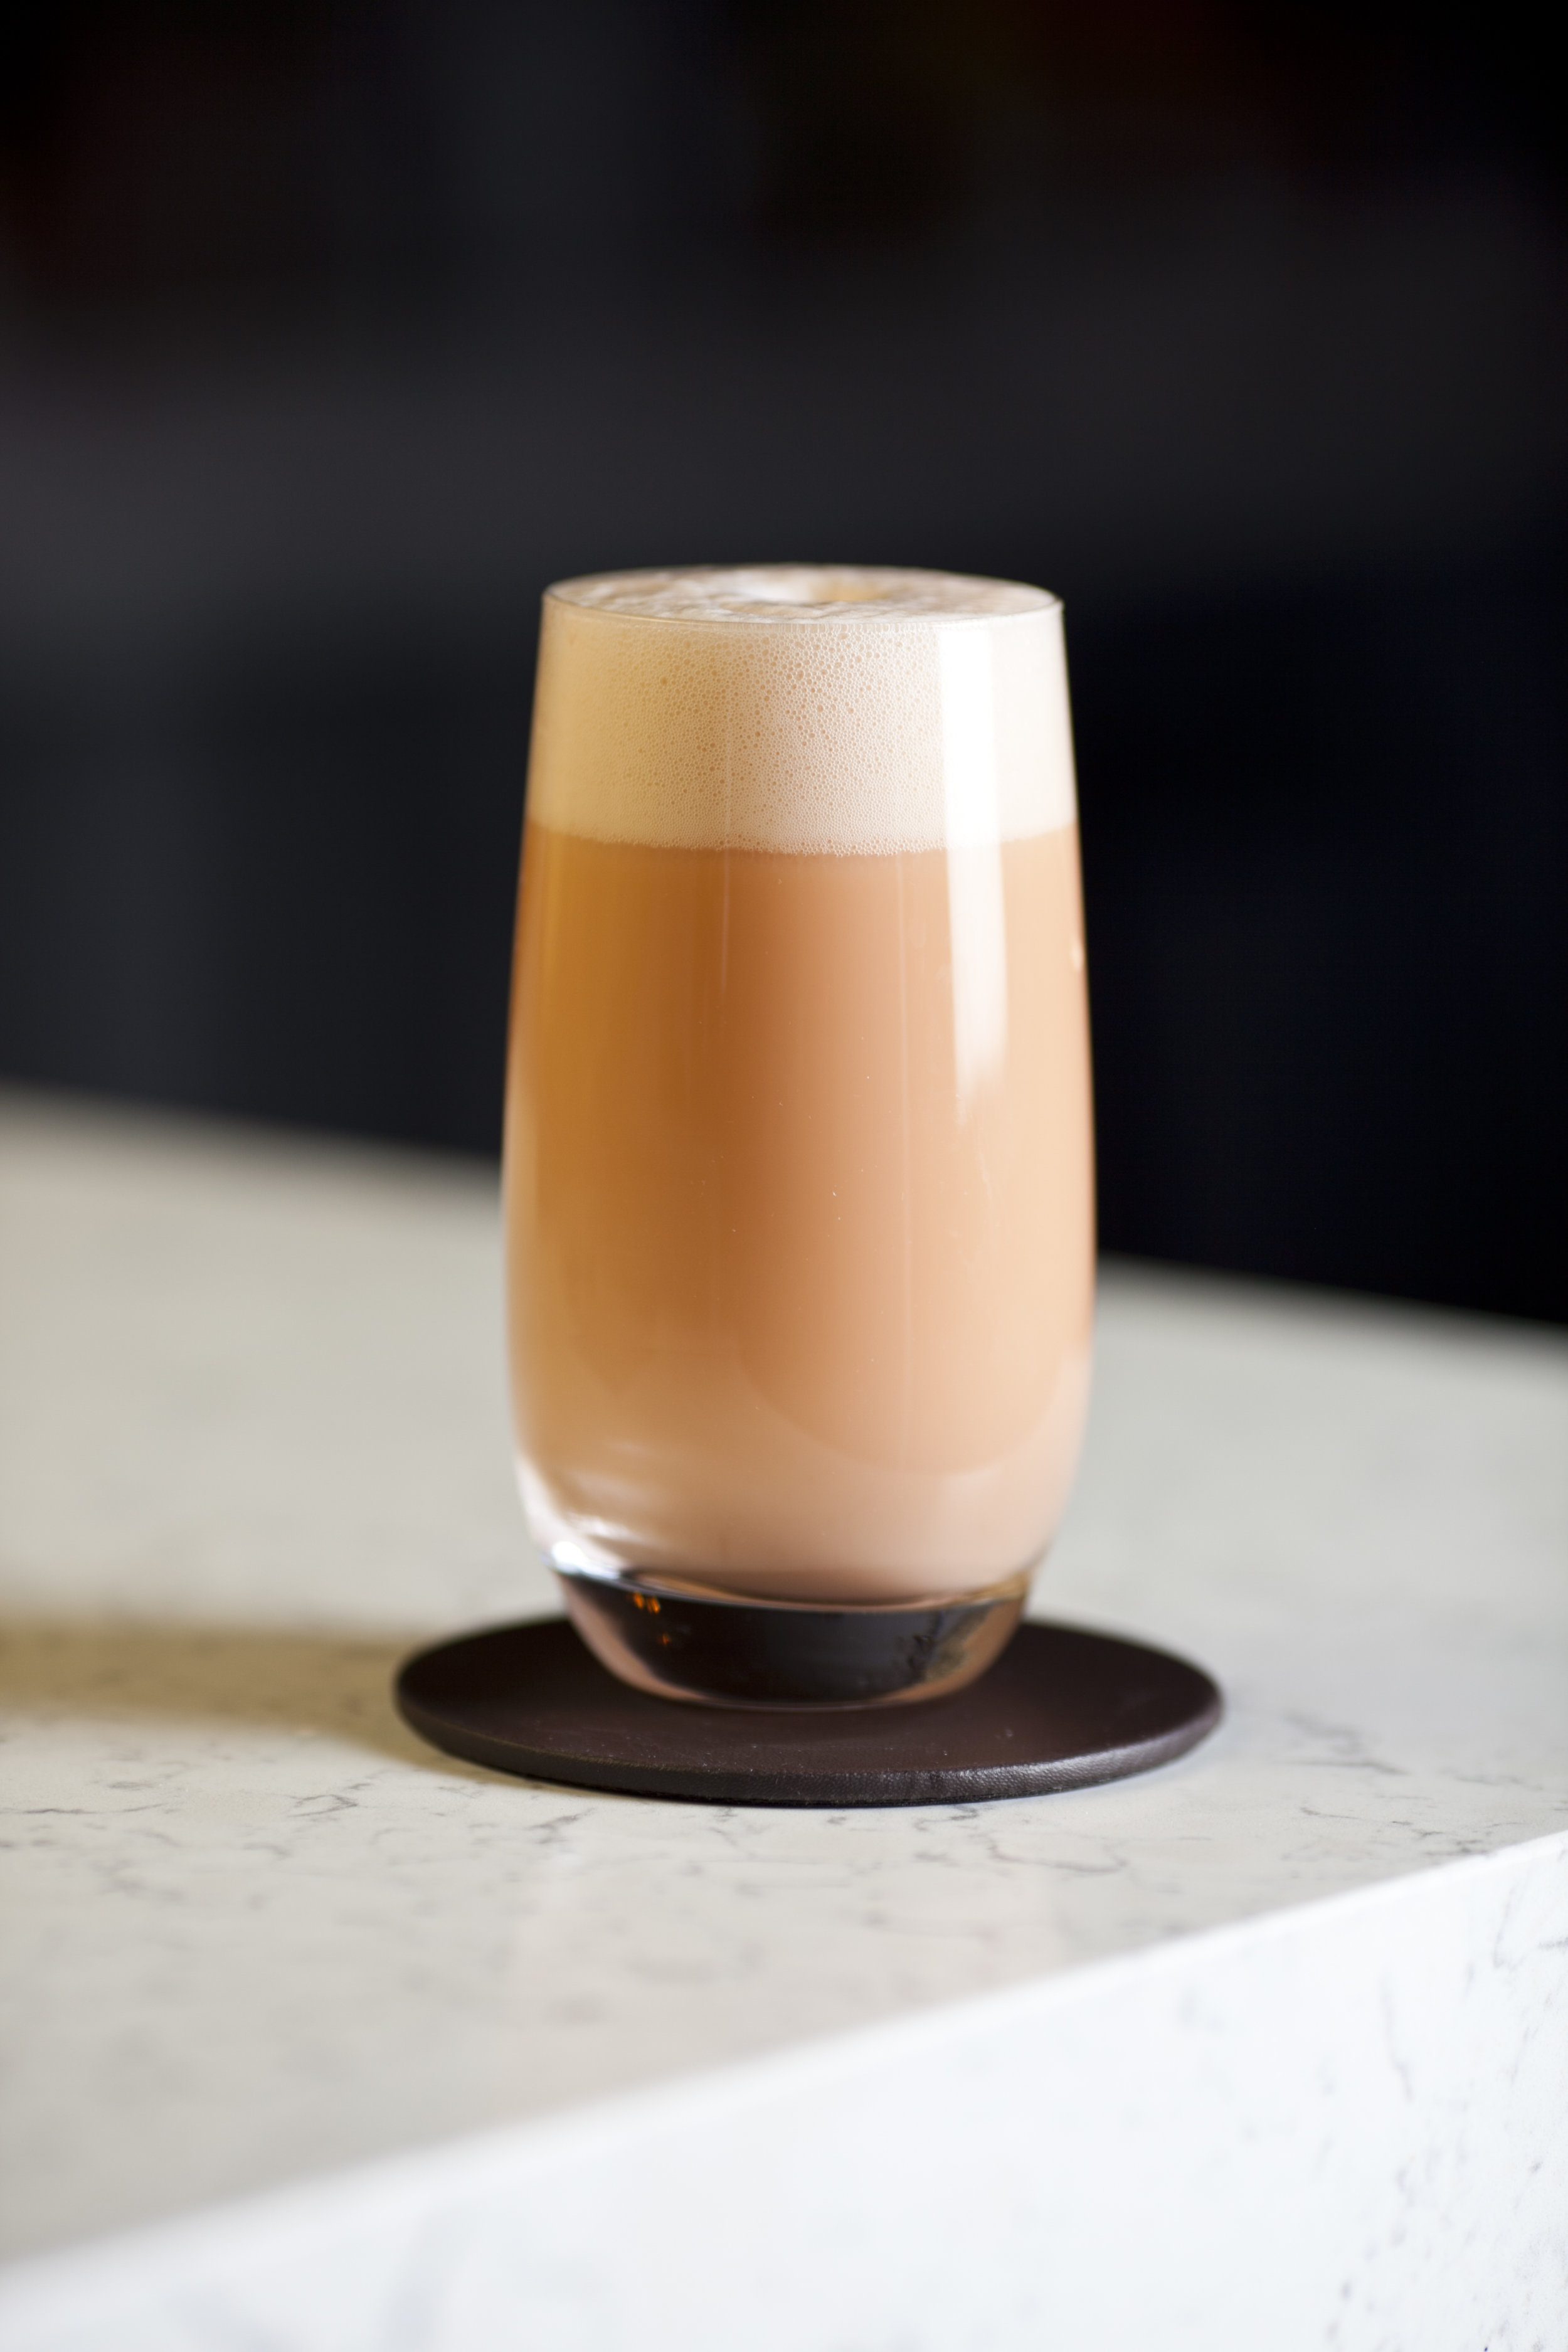 Settle back and enjoy your frothy Aperol Egg Cream cocktail.